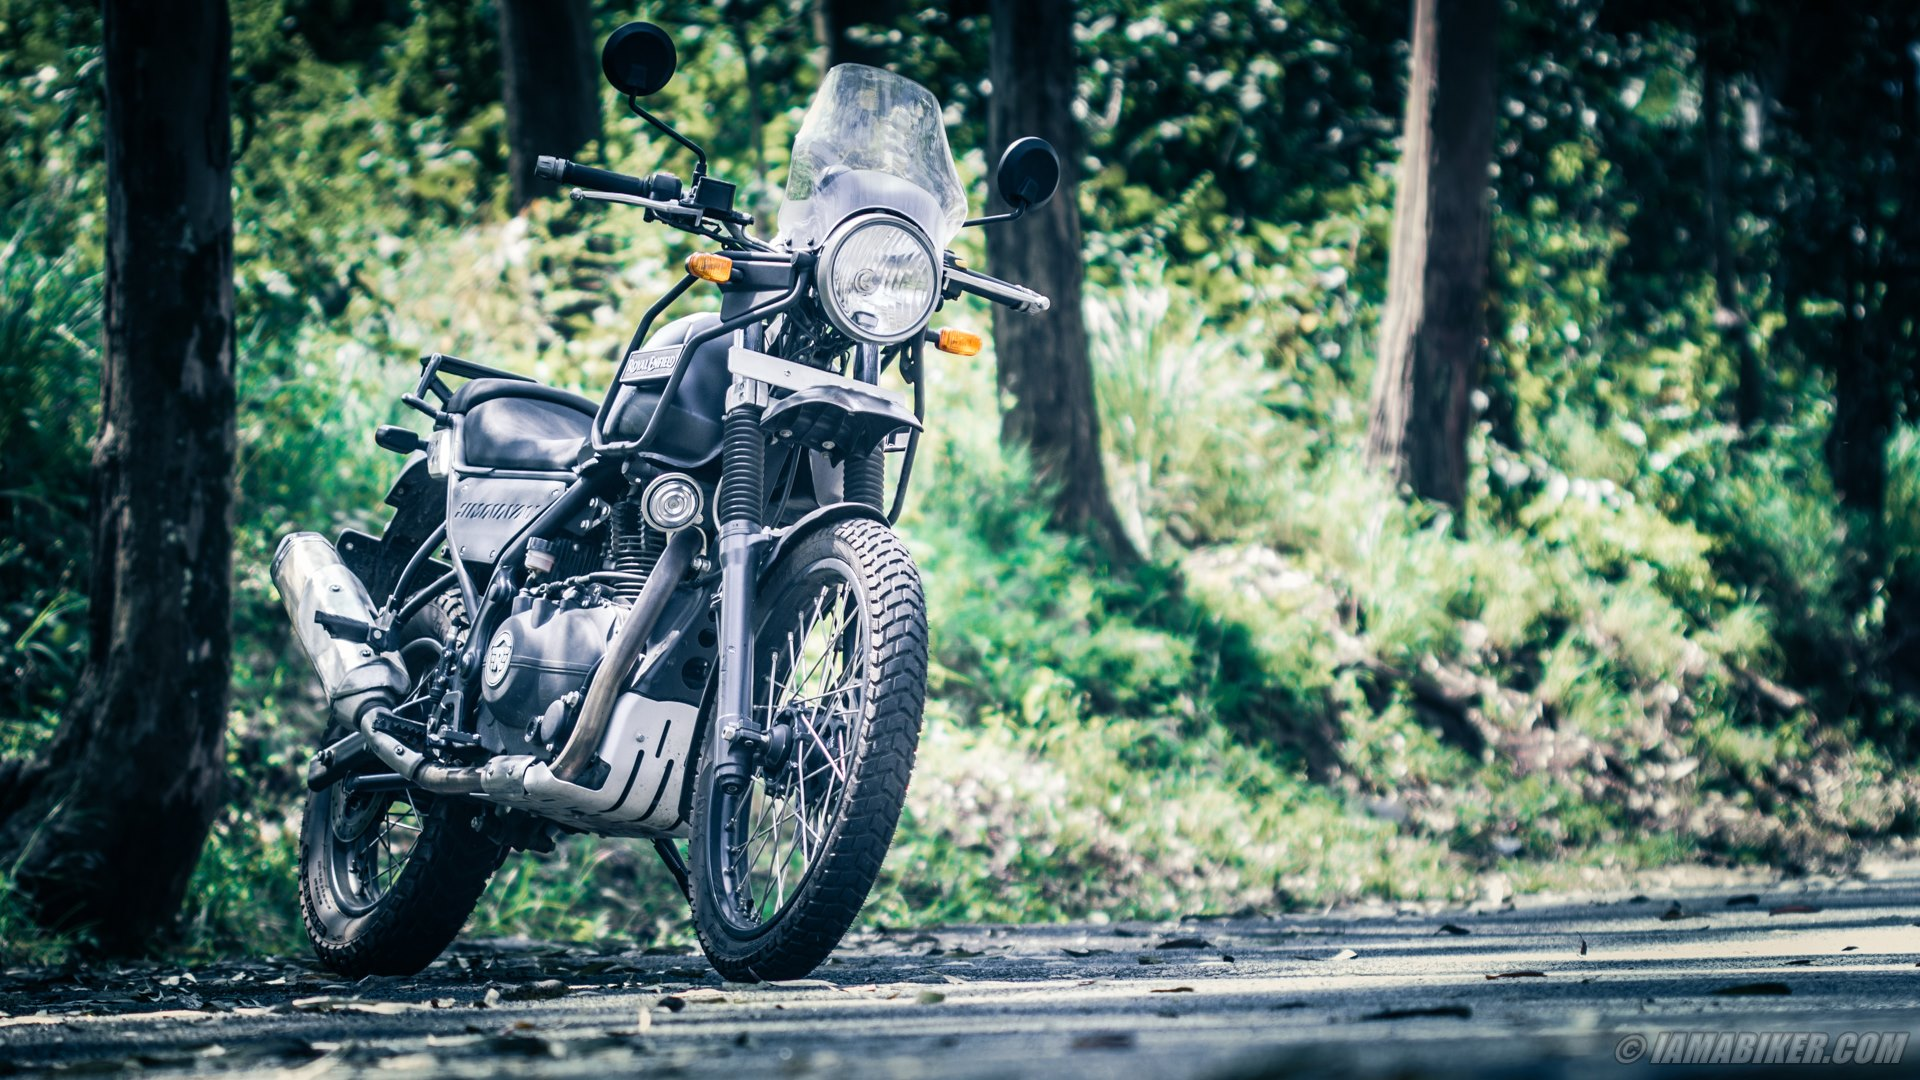 Hd wallpaper royal enfield - Royal Enfield Himalayan Hd Wallpapers 3